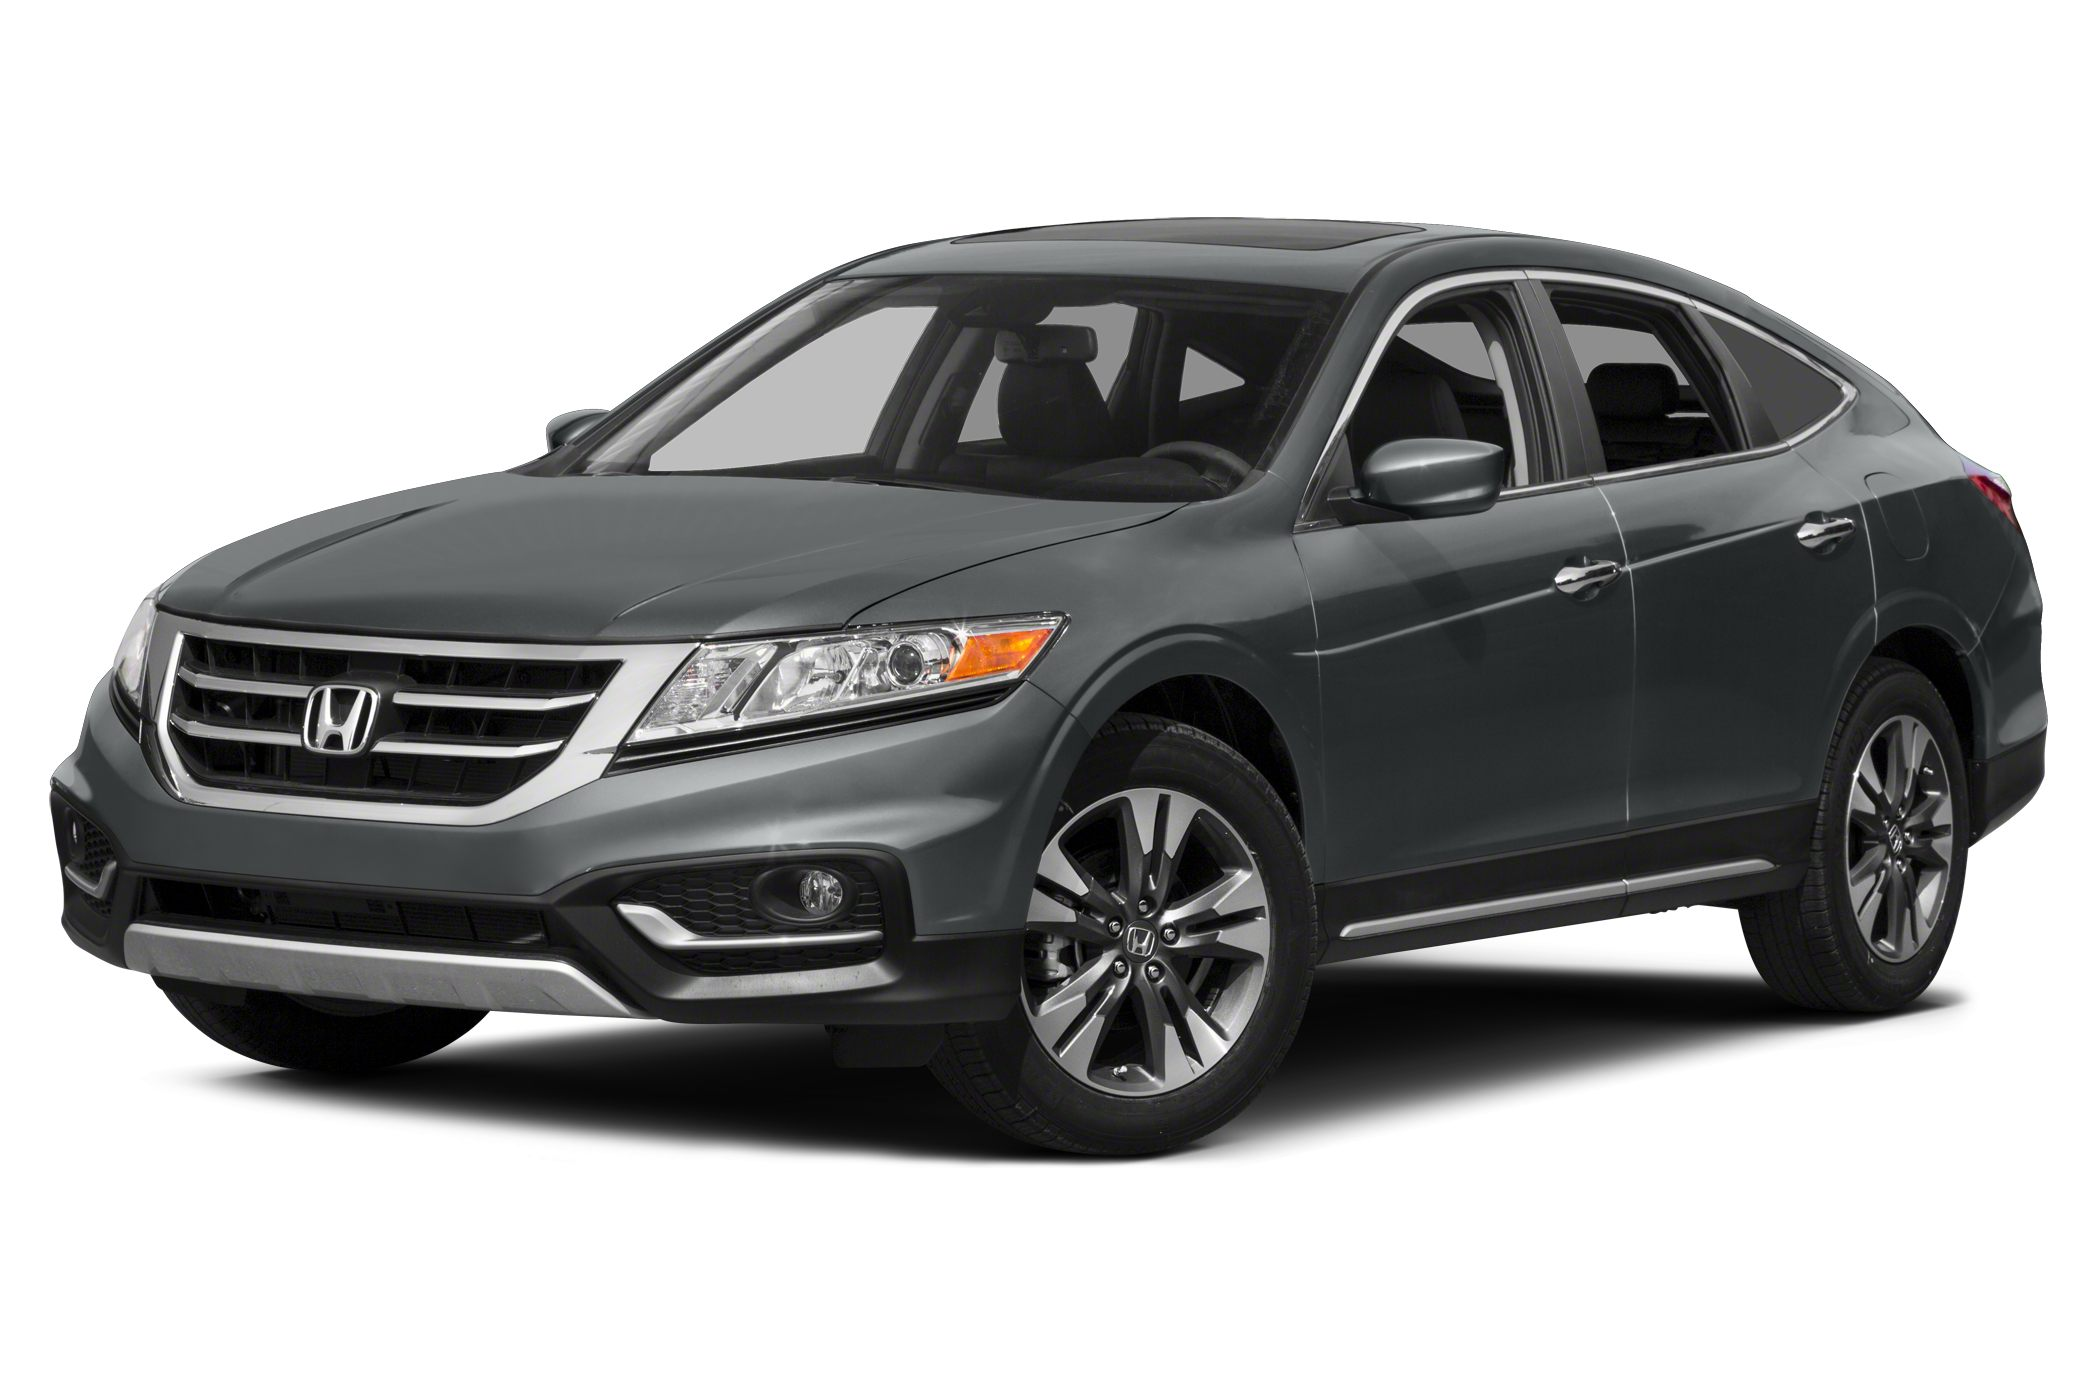 Honda Crosstour: photos, specifications, reviews of owners 16